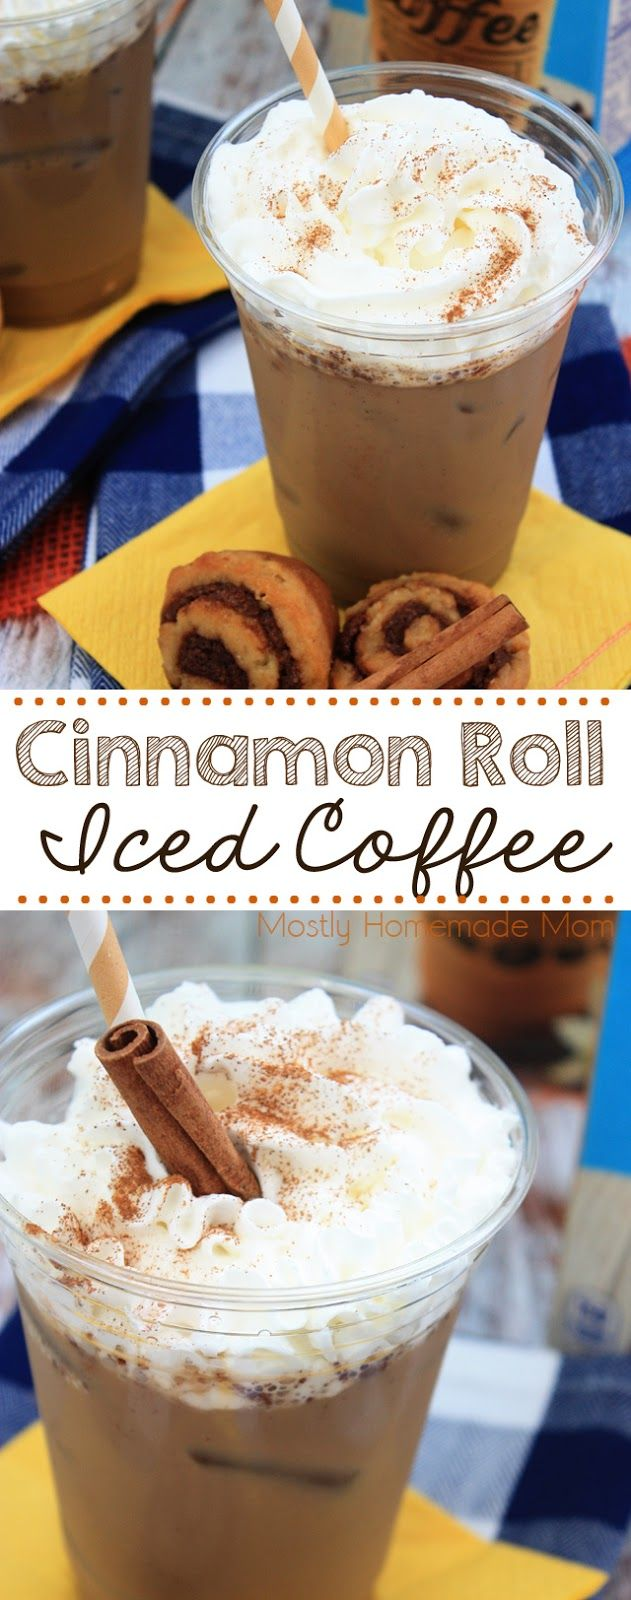 Cinnamon Roll Iced Coffee  Recipe  Mostly Homemade Mom -9105